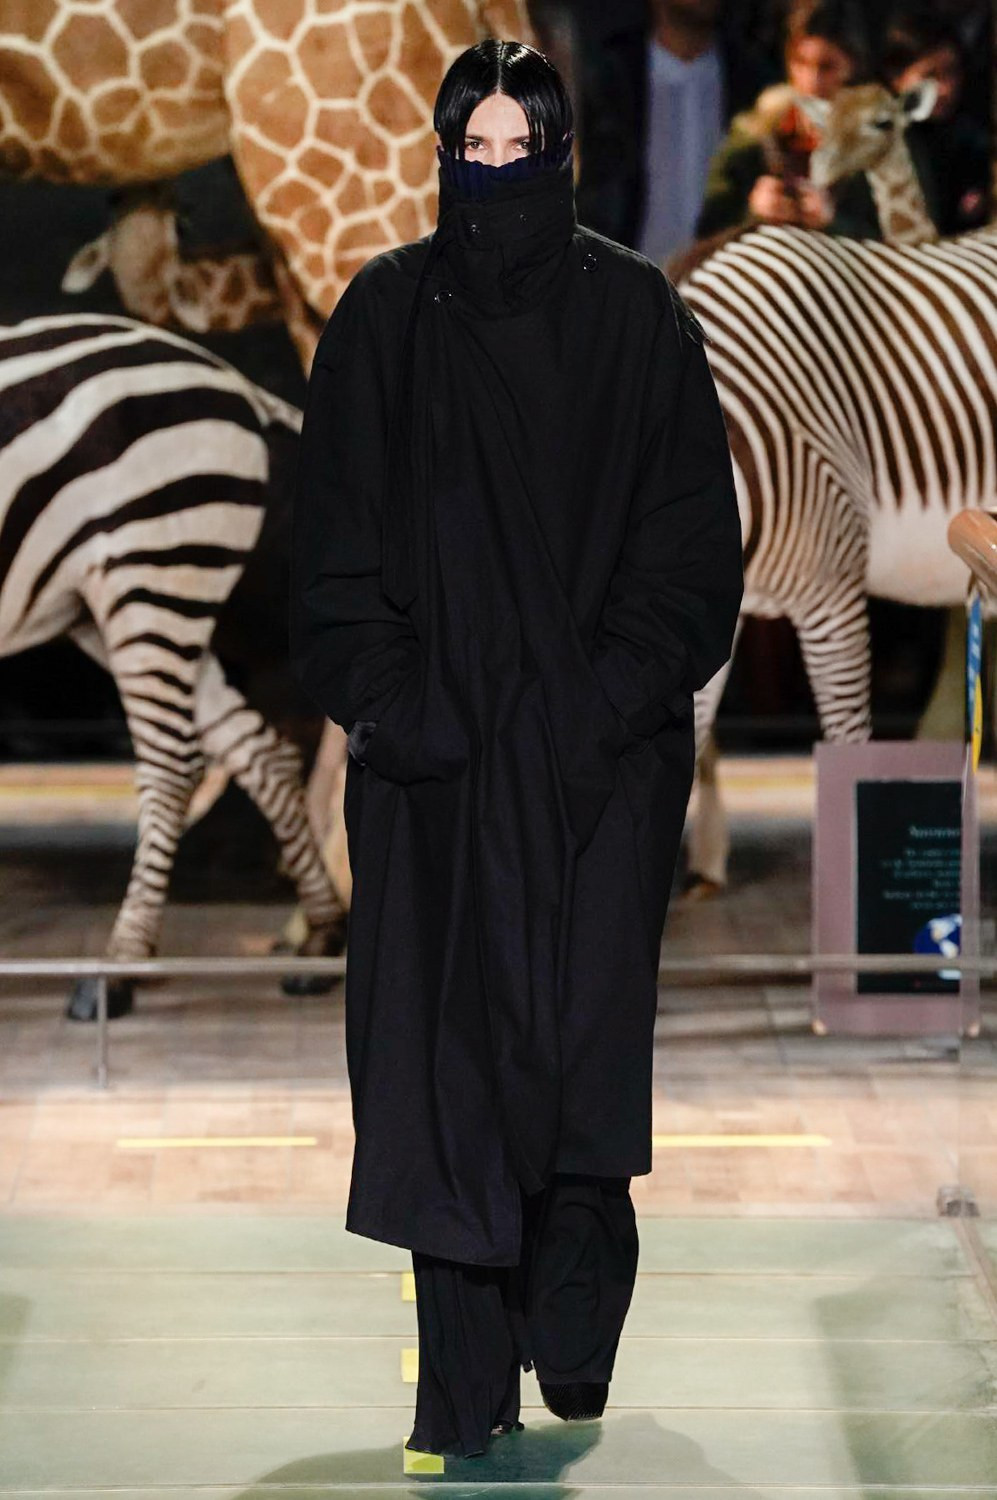 https---vetements-aw19-dtf-magazine.com-image-2019-01-vetements-fall-winter-2019-paris-fashion-week-14